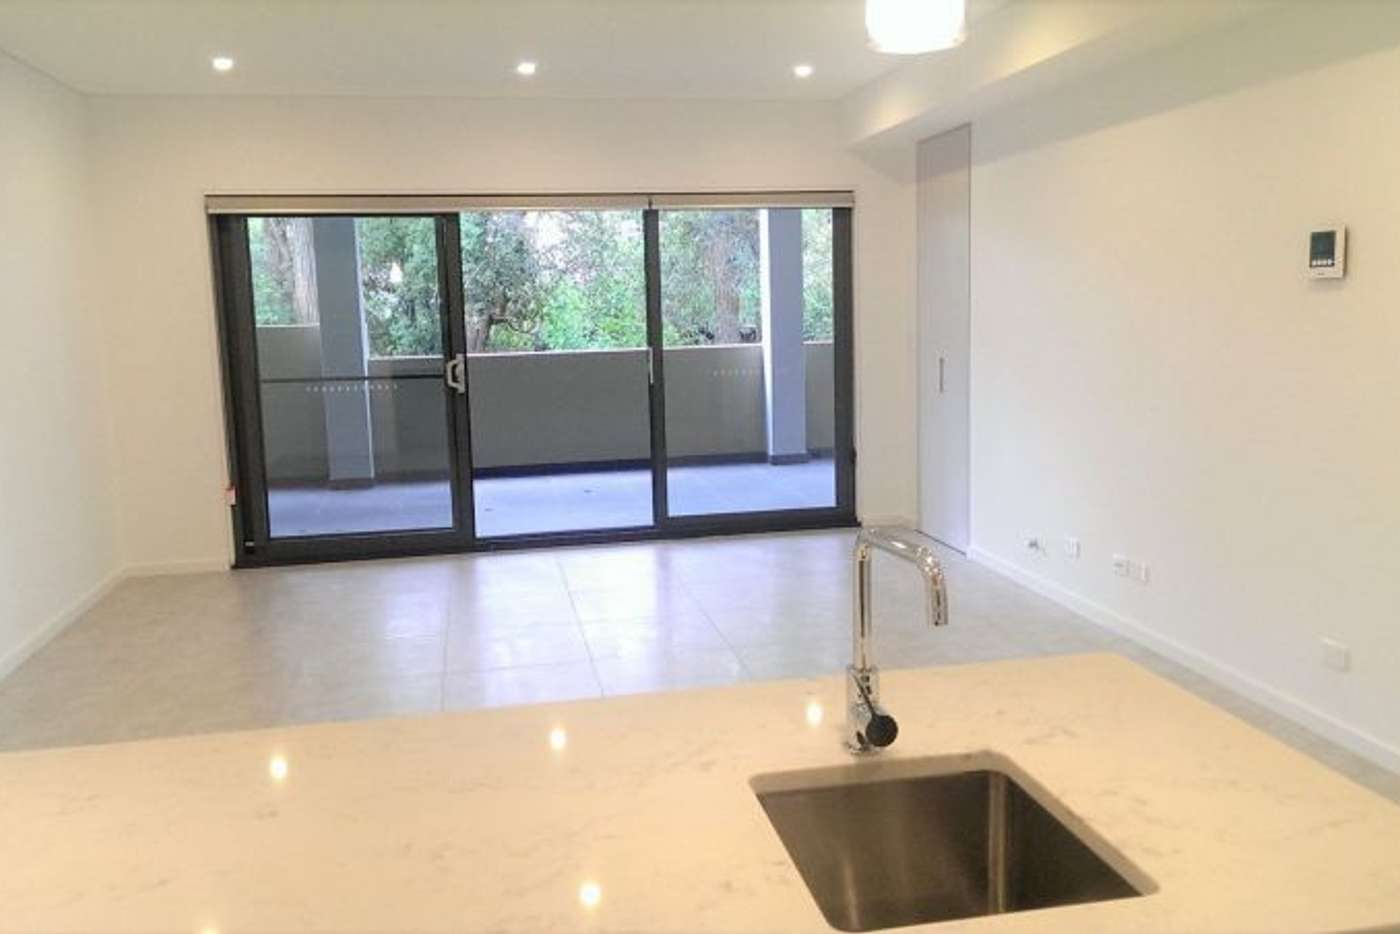 Main view of Homely apartment listing, 54/44-52 Kent Street, Epping NSW 2121